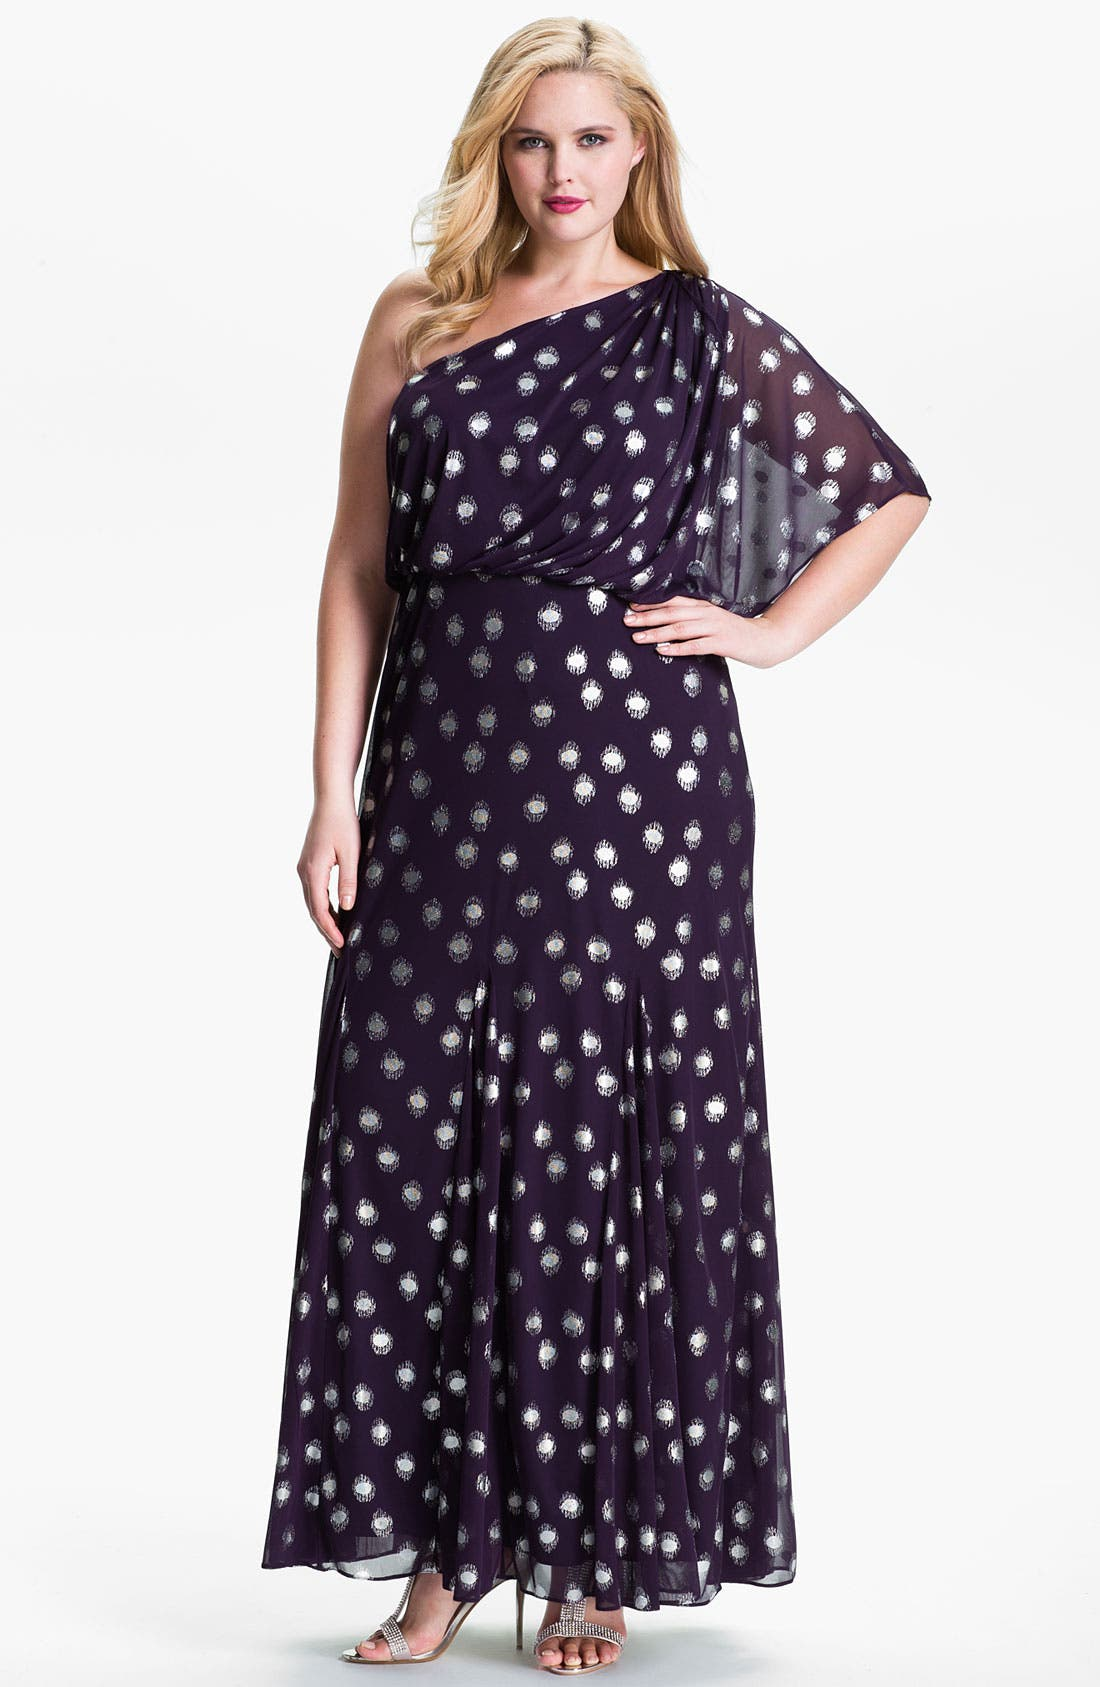 Alternate Image 1 Selected - Adrianna Papell Foil Dot One Shoulder Chiffon Dress (Plus)